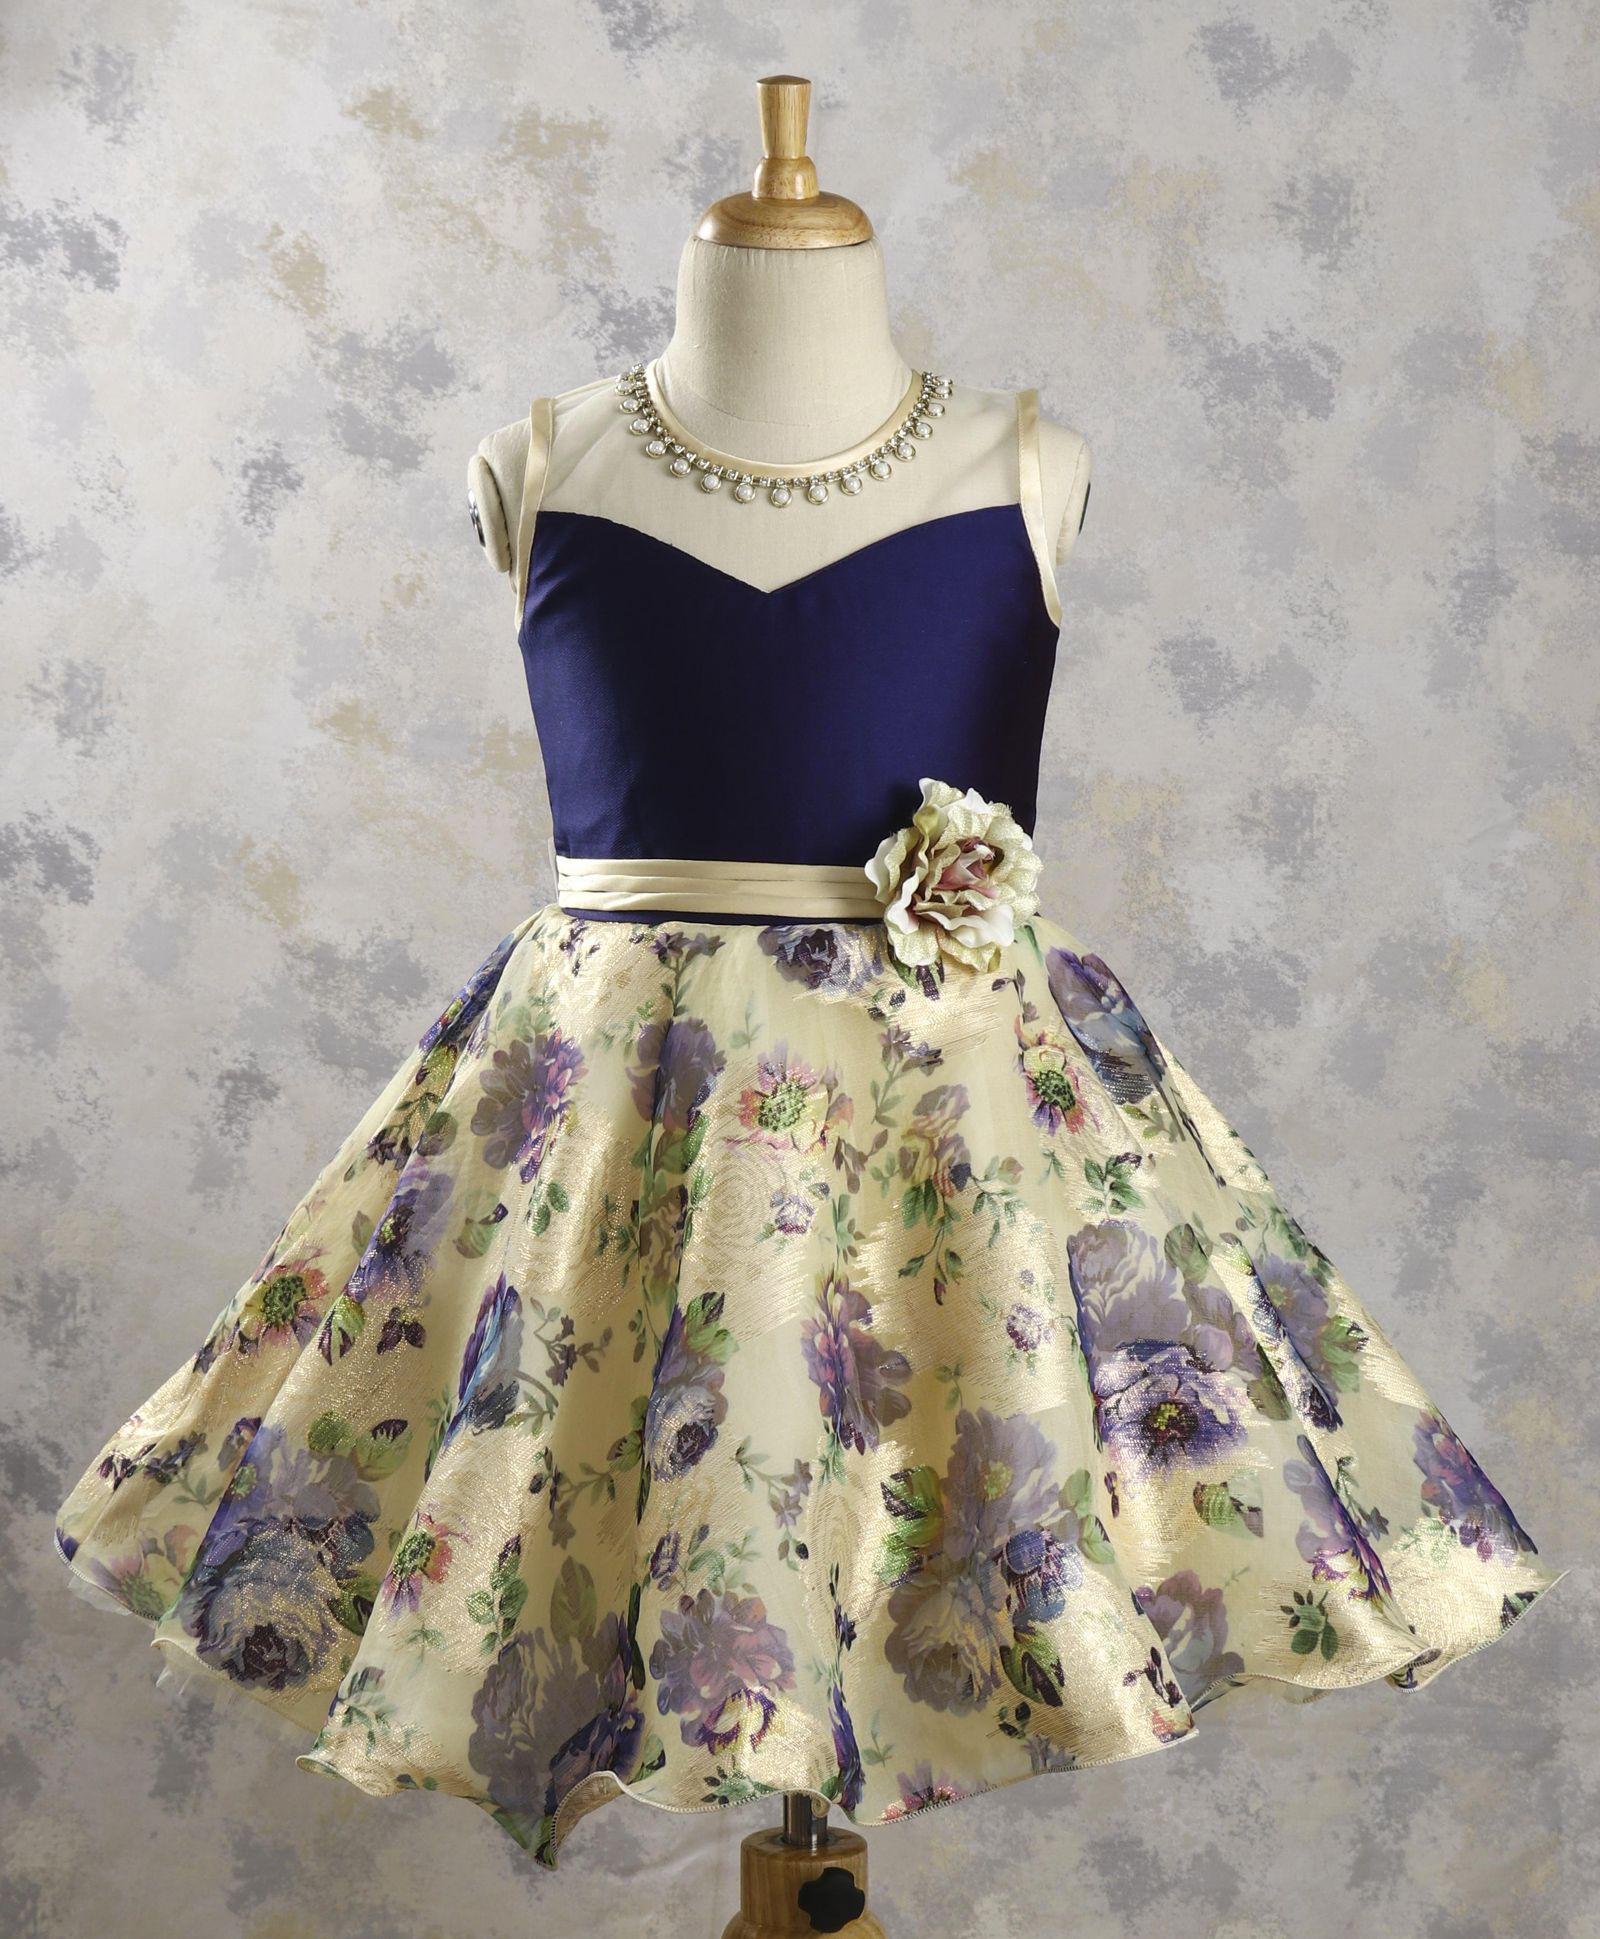 8449e00e816 Buy Bluebell Floral Party Dress With Attached Neckpiece Navy Cream ...